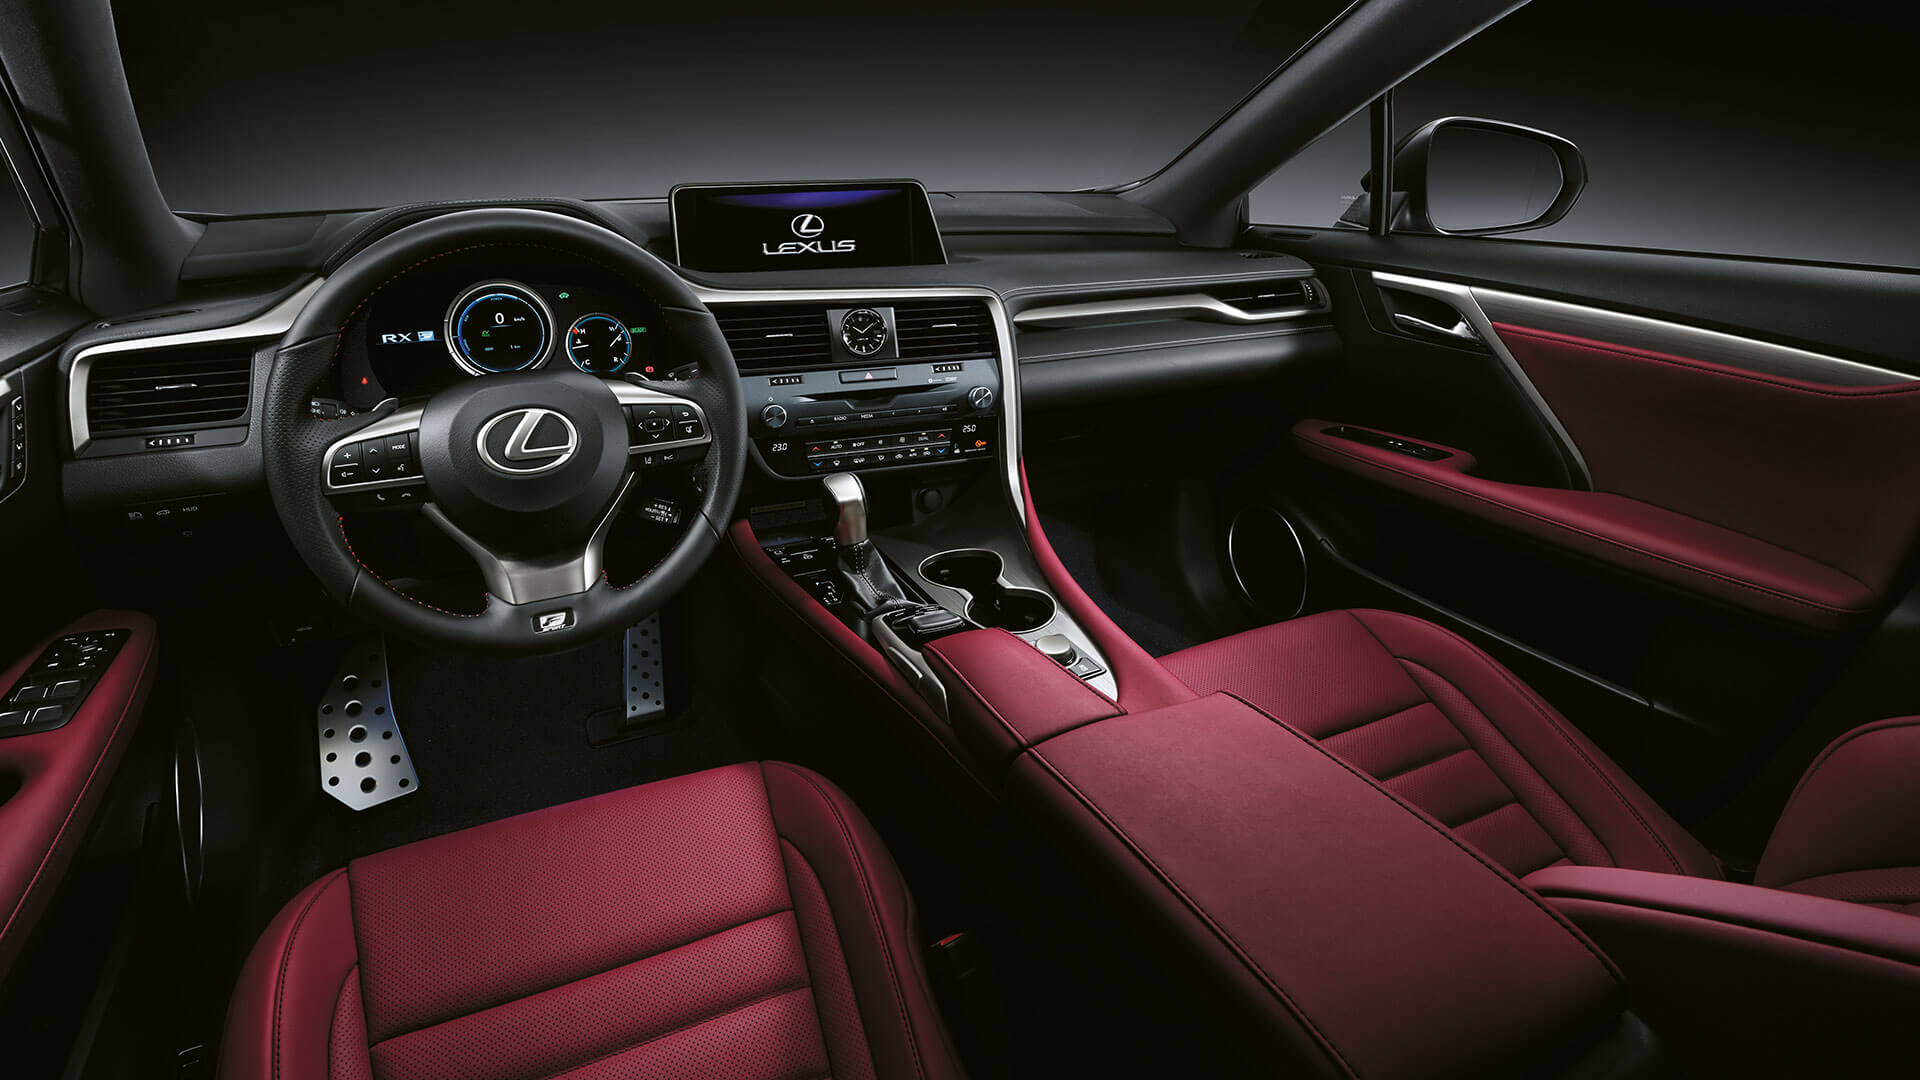 2018 lexus rx my18 gallery 023 interior